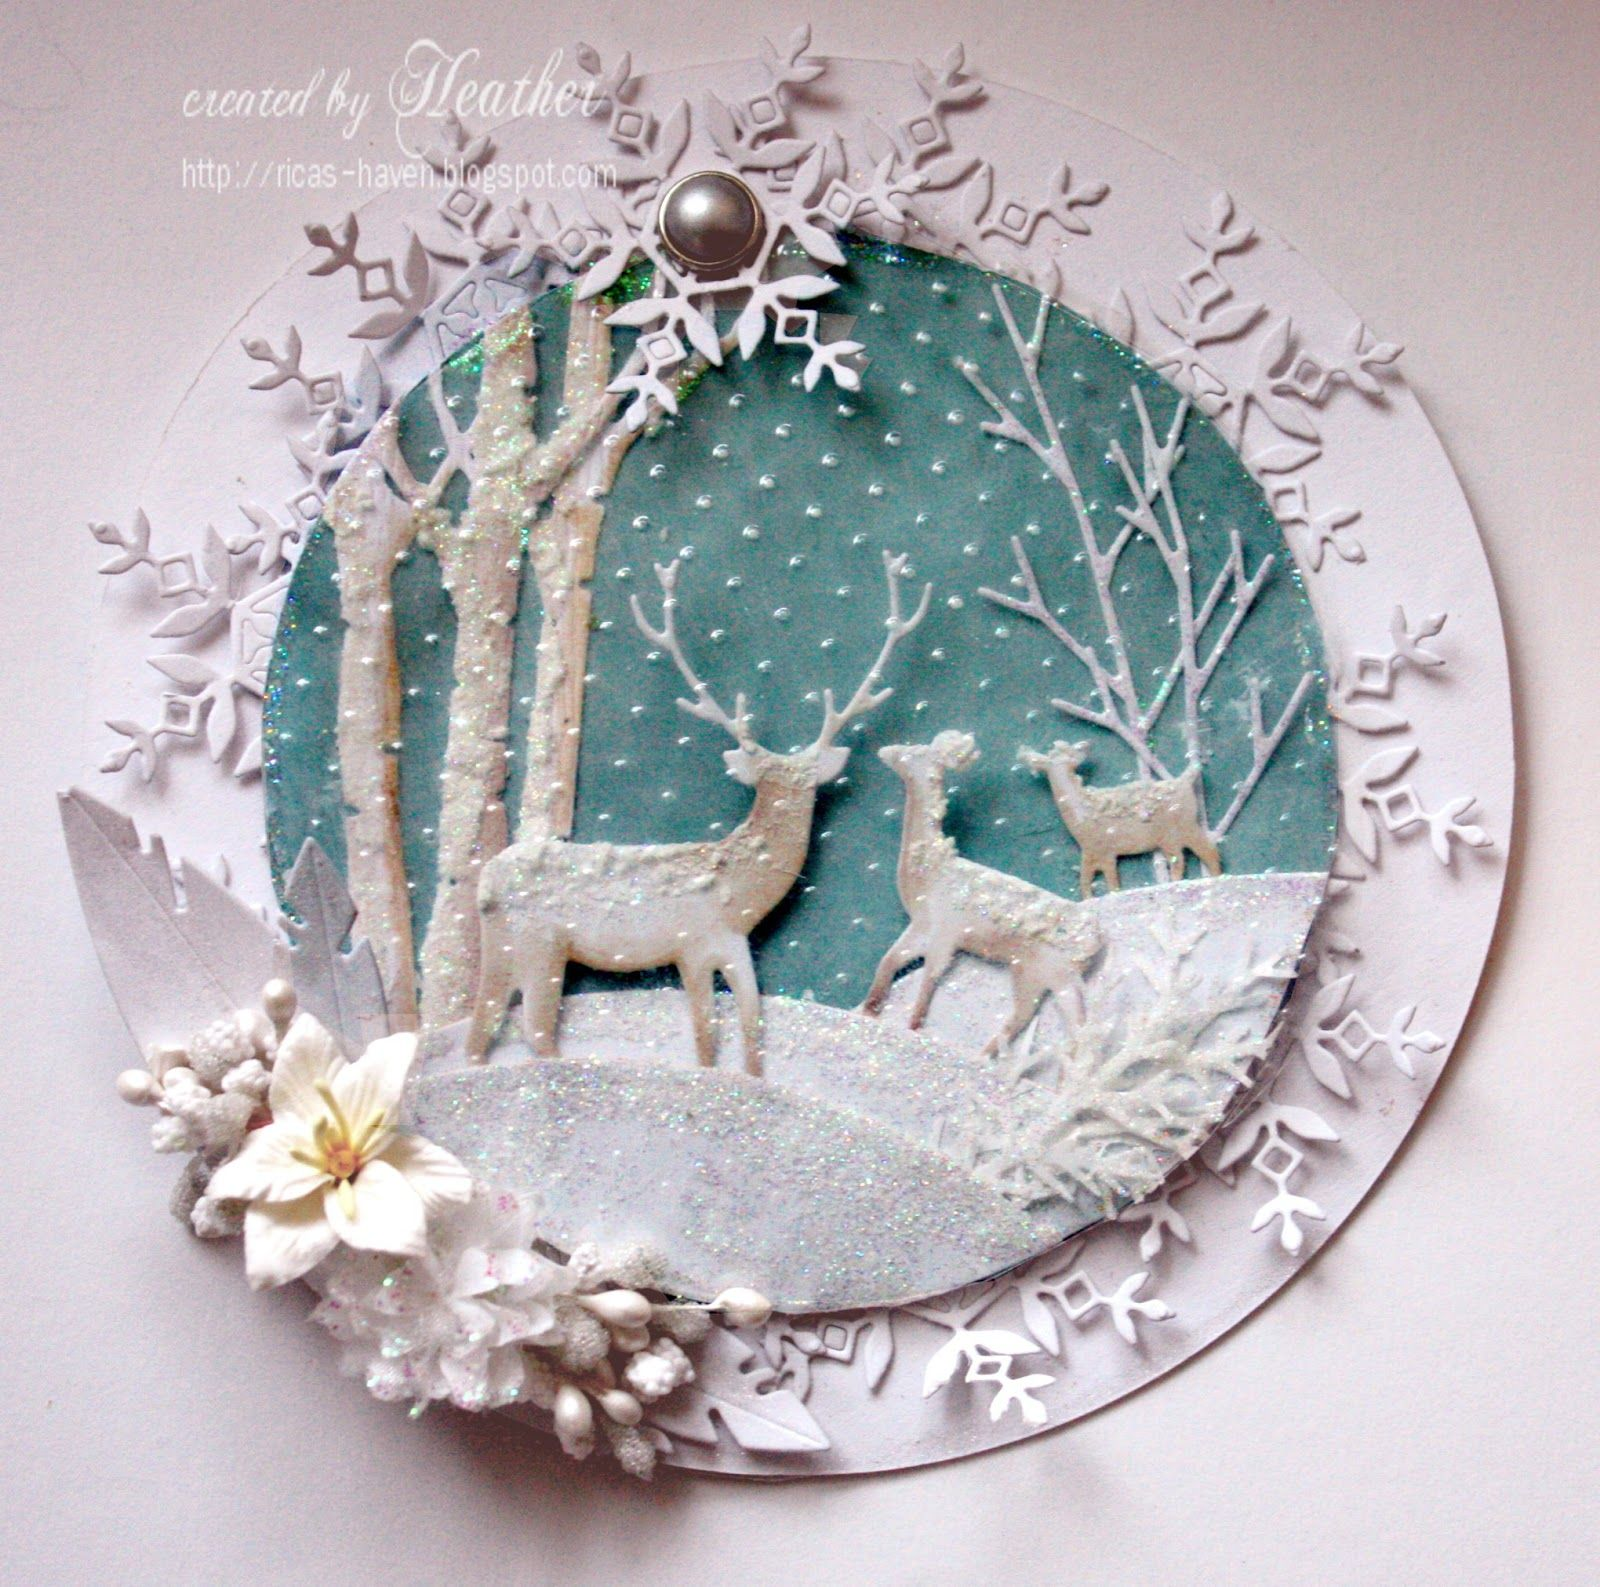 simon says ice inspiration simon wednesday challenge blog chistmas cards tags and deer. Black Bedroom Furniture Sets. Home Design Ideas